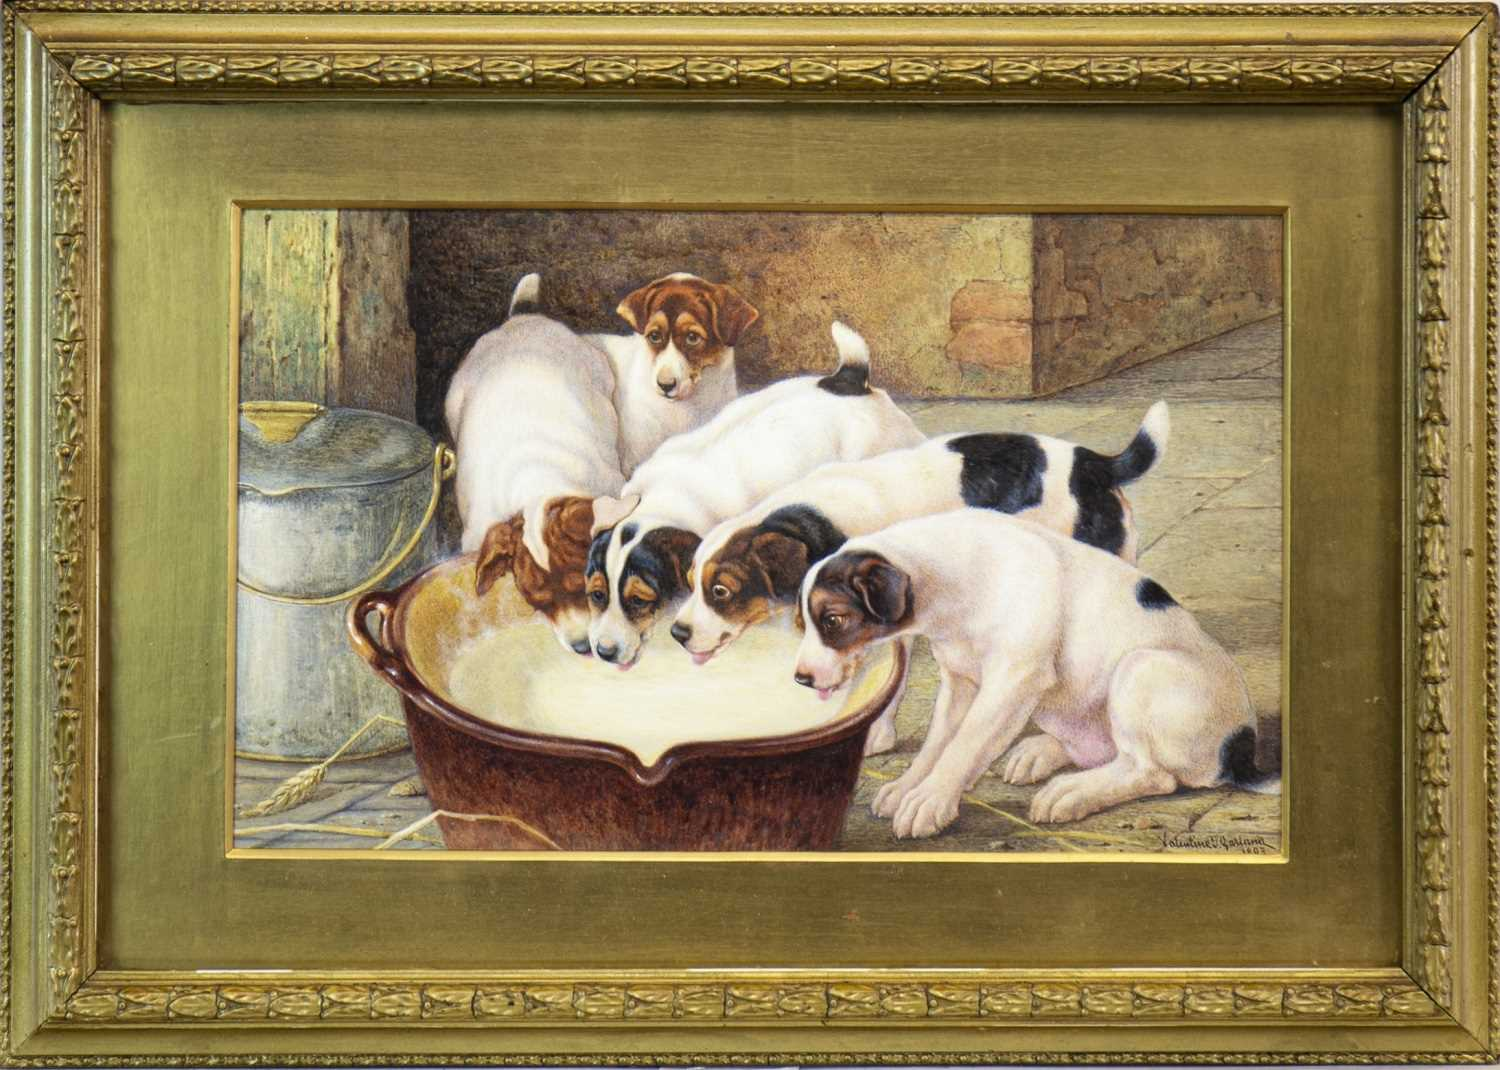 Lot 422-DRINK, PUPPY, DRINK, A WATERCOLOUR BY VALENTINE GARLAND